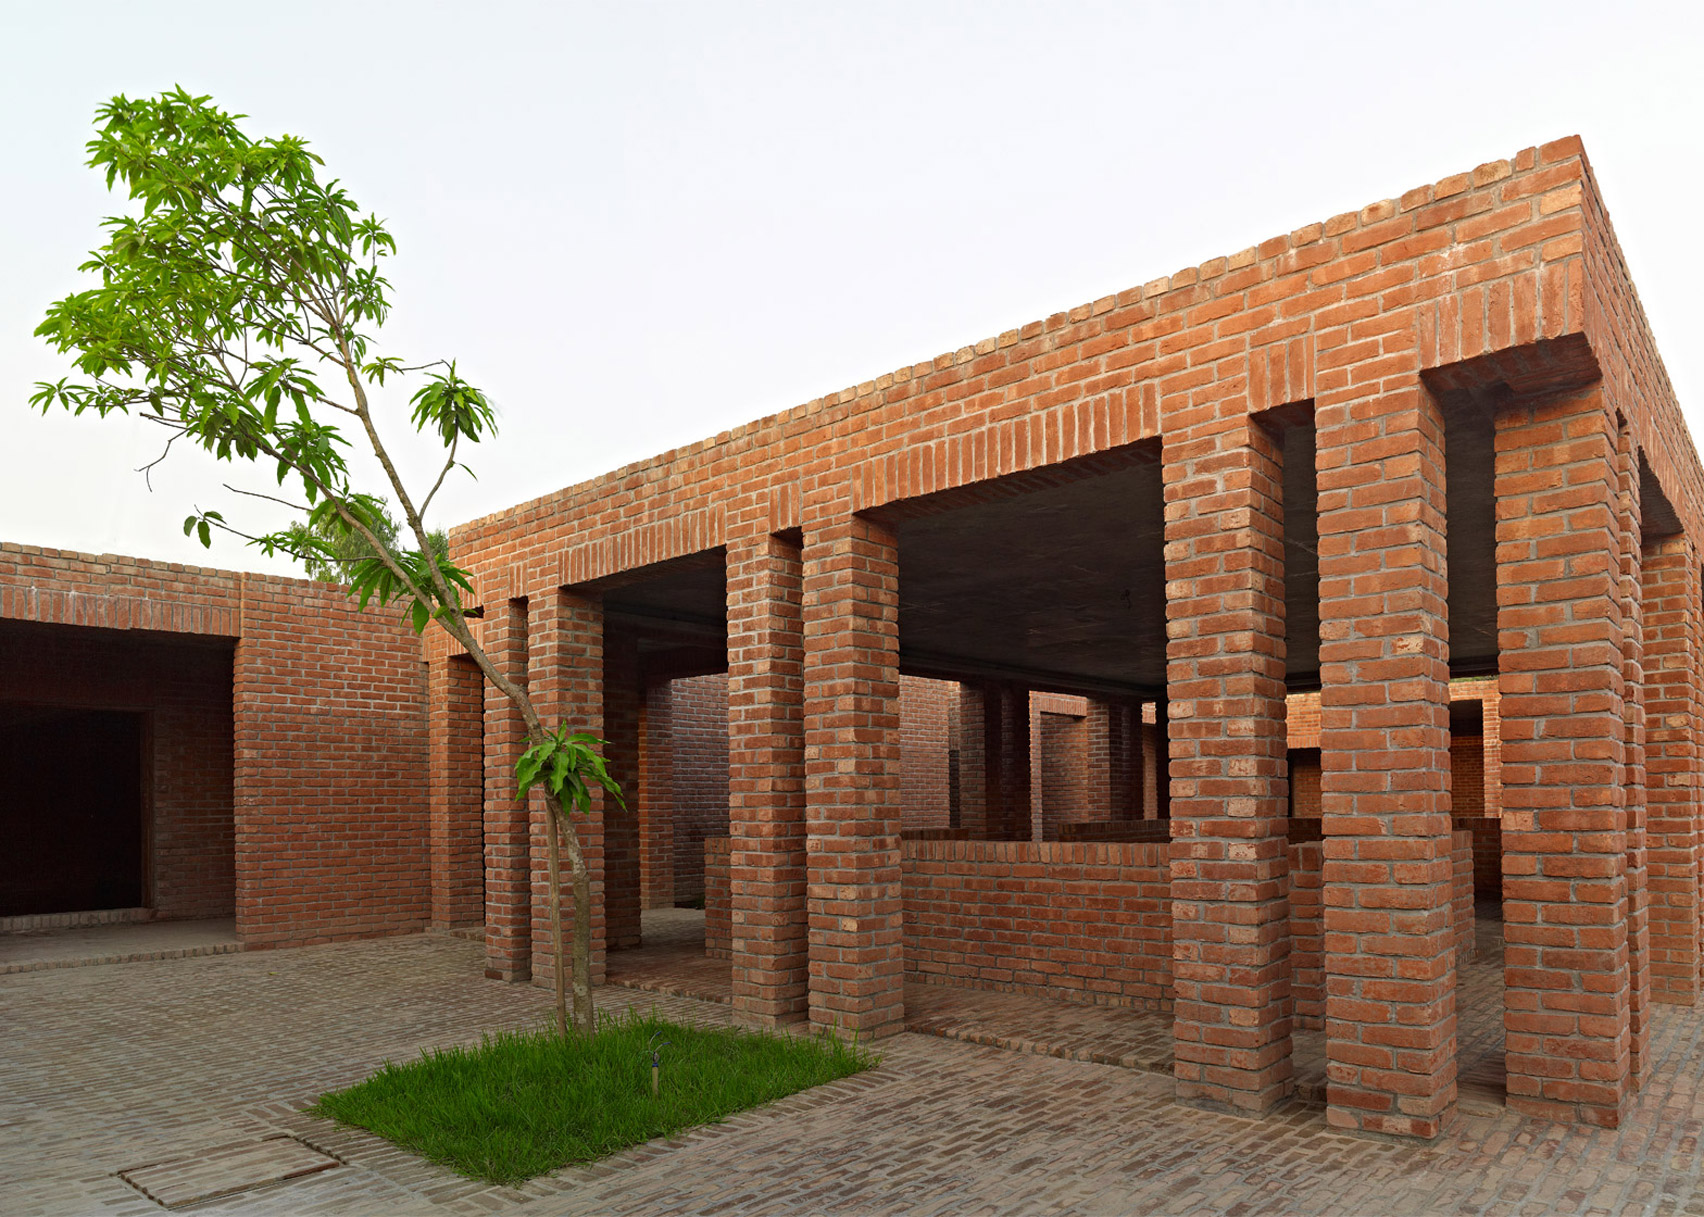 Friendship Centre, Gaibandha, Bangladesh by Kashef Mahboob Chowdhury of URBANA